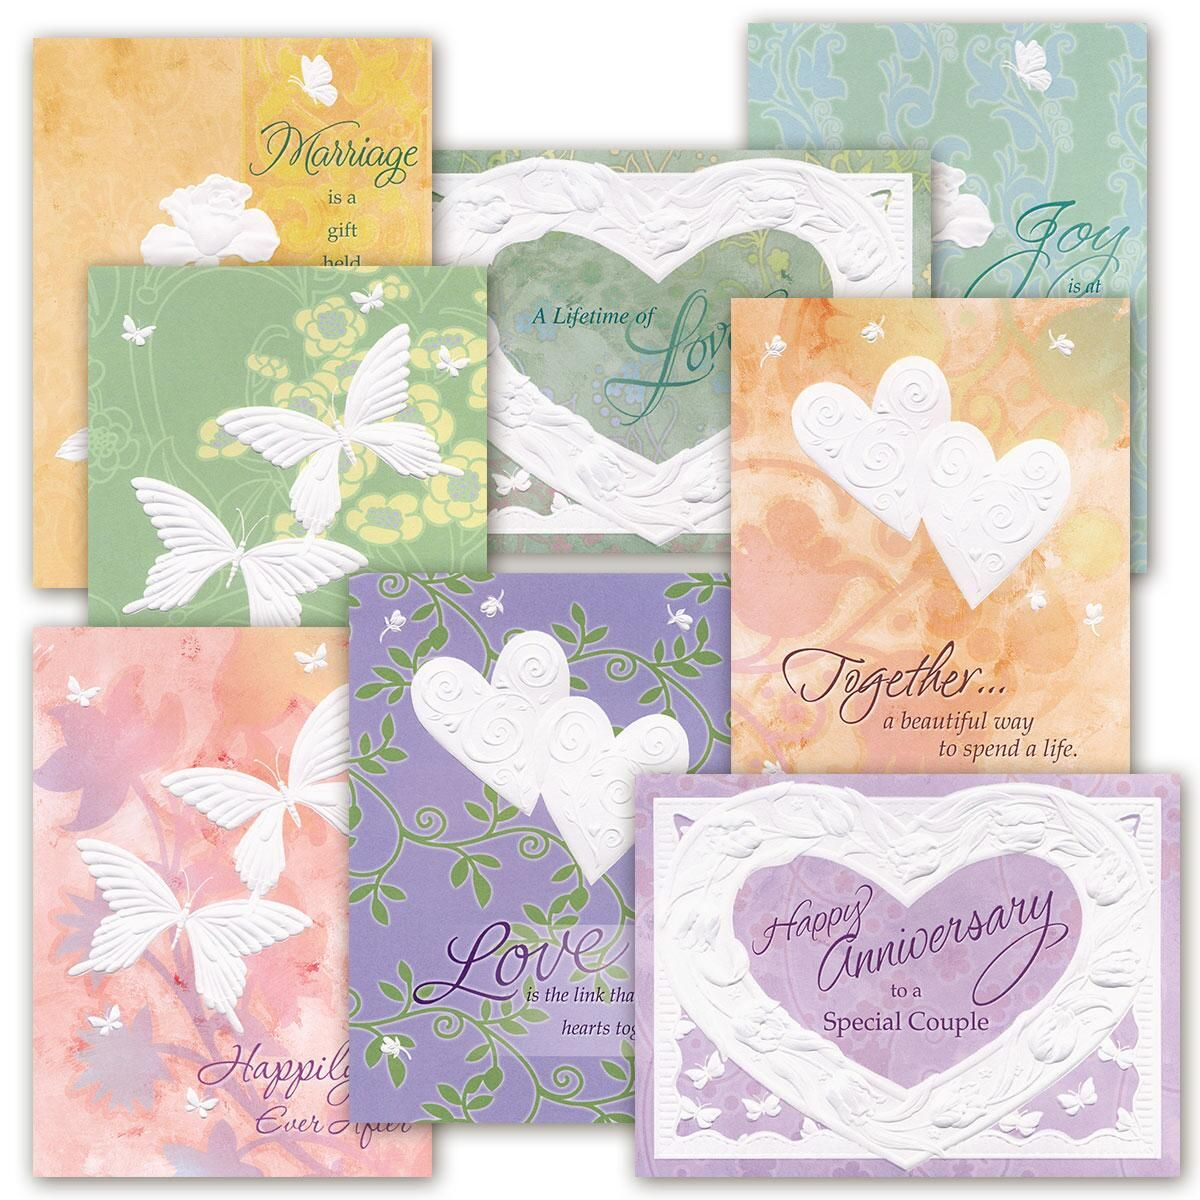 Deluxe Embossed Anniversary Cards Value Pack